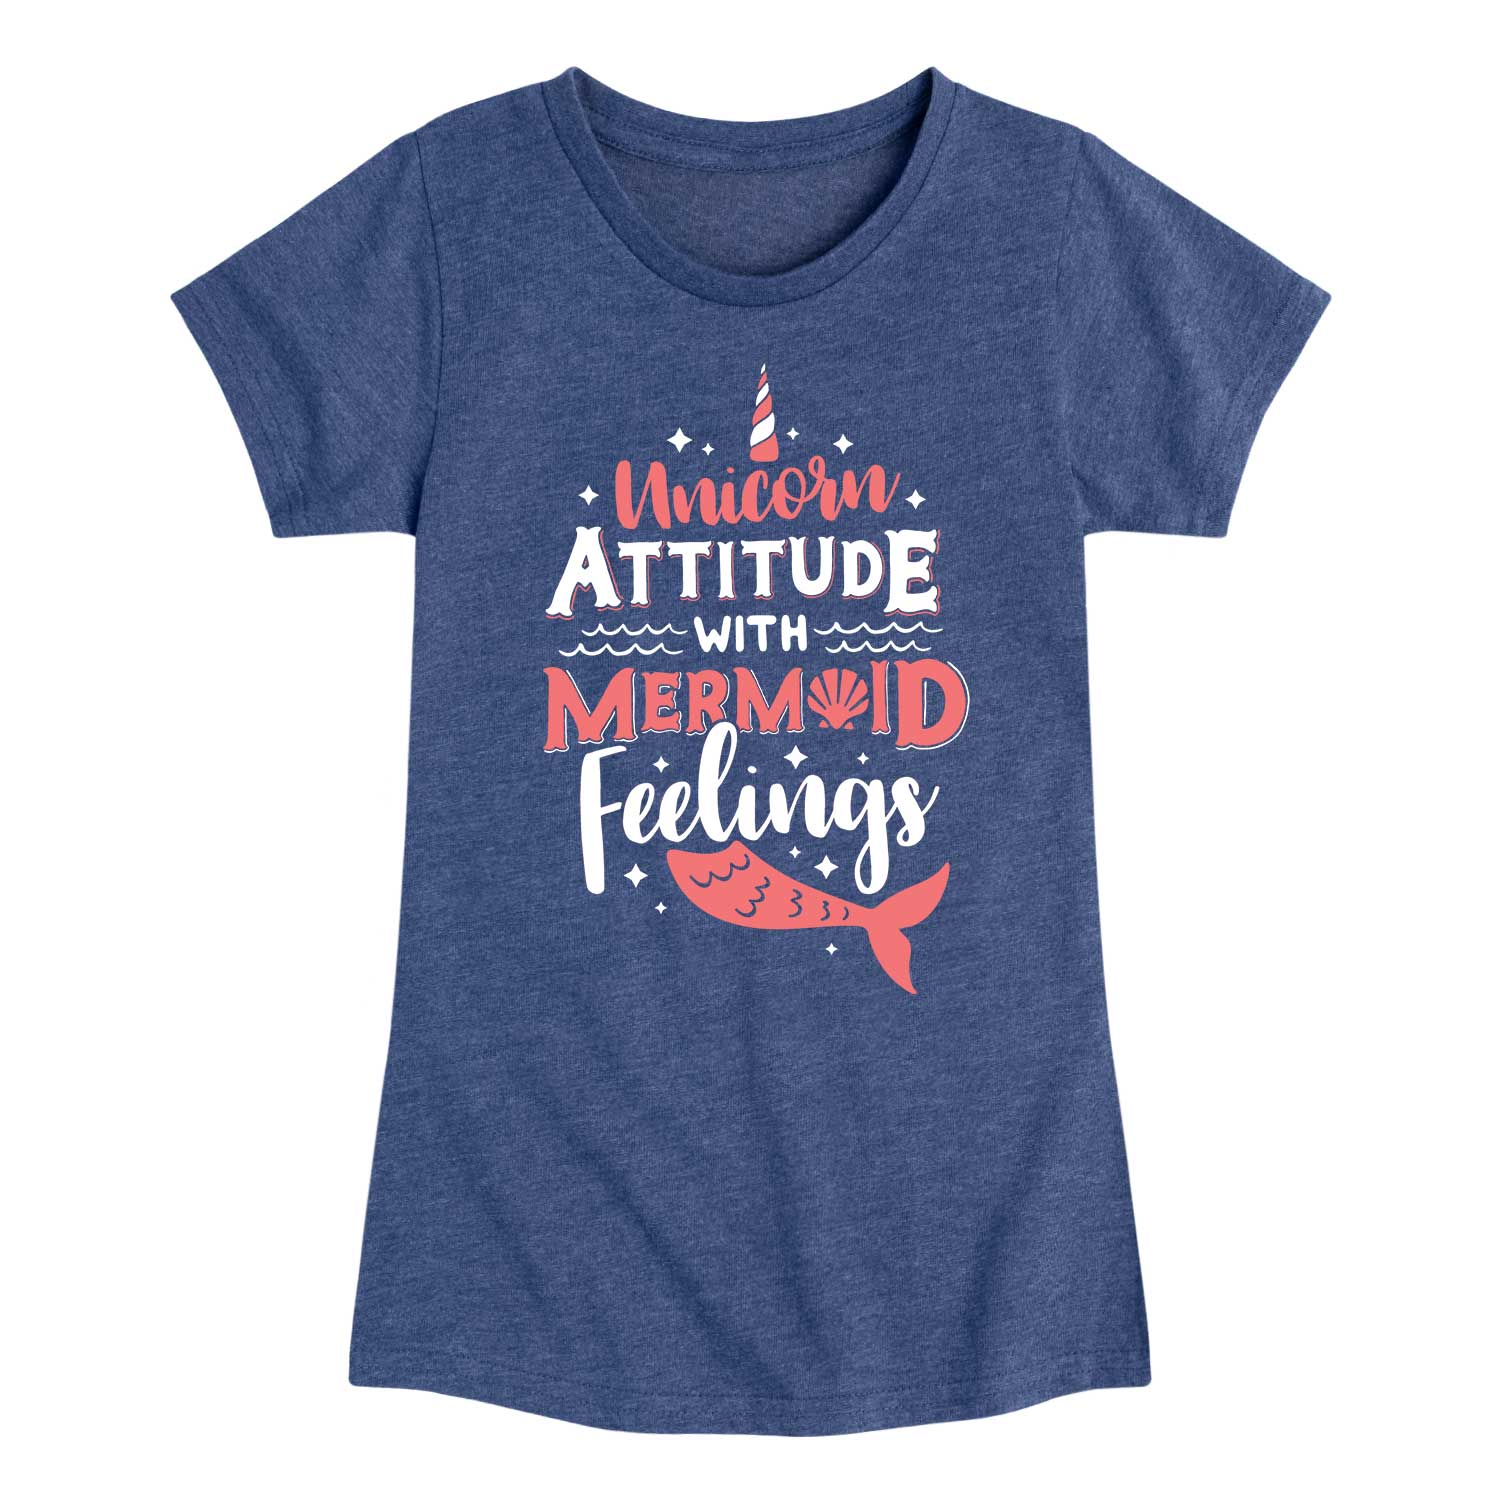 Unicorn Attitude with Mermaid Feelings - Youth & Toddler Girls Short Sleeve T-Shirt